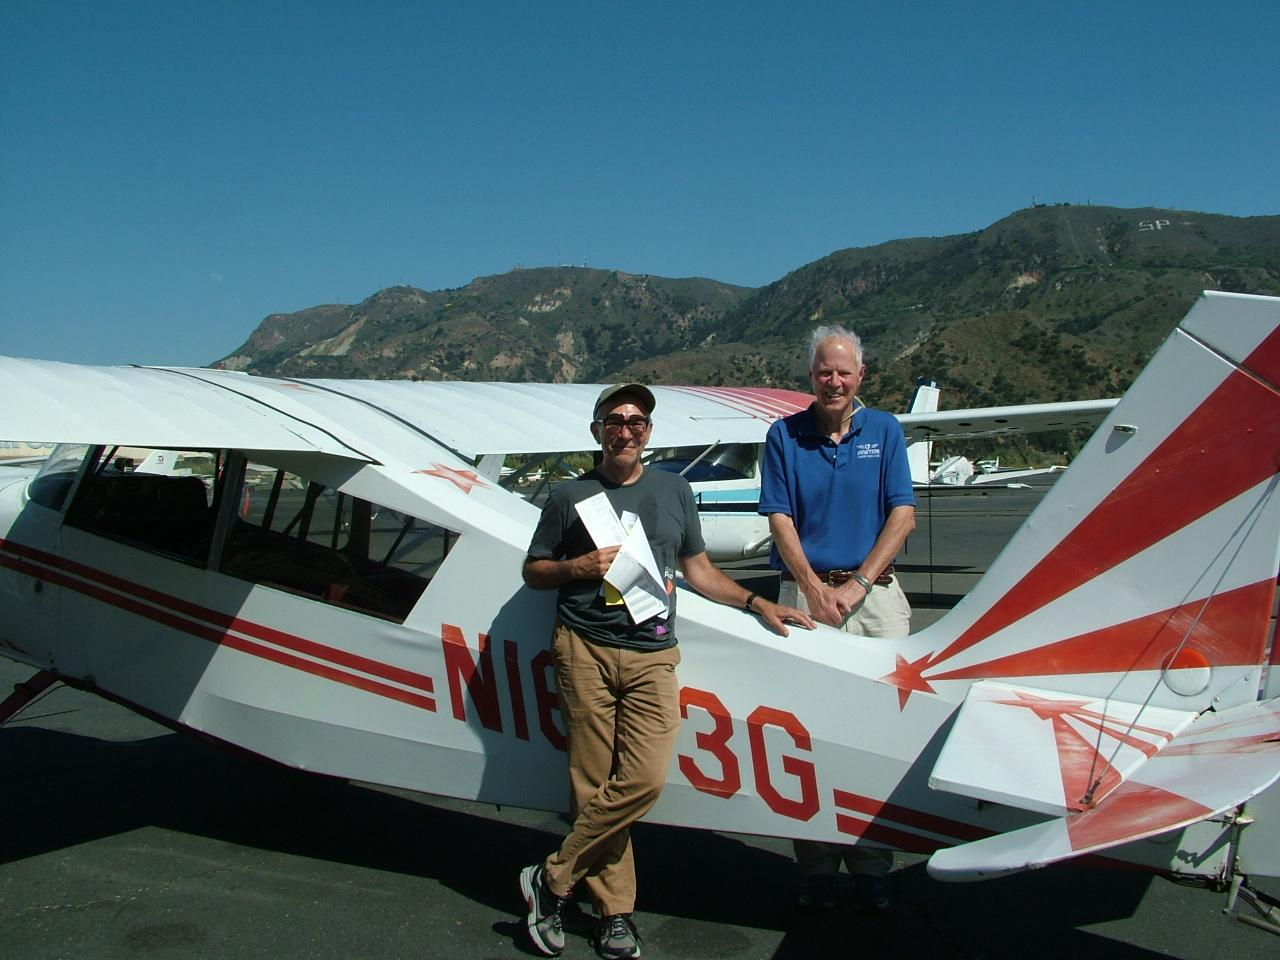 Tailwheel Endorsement - Neal Schleimer